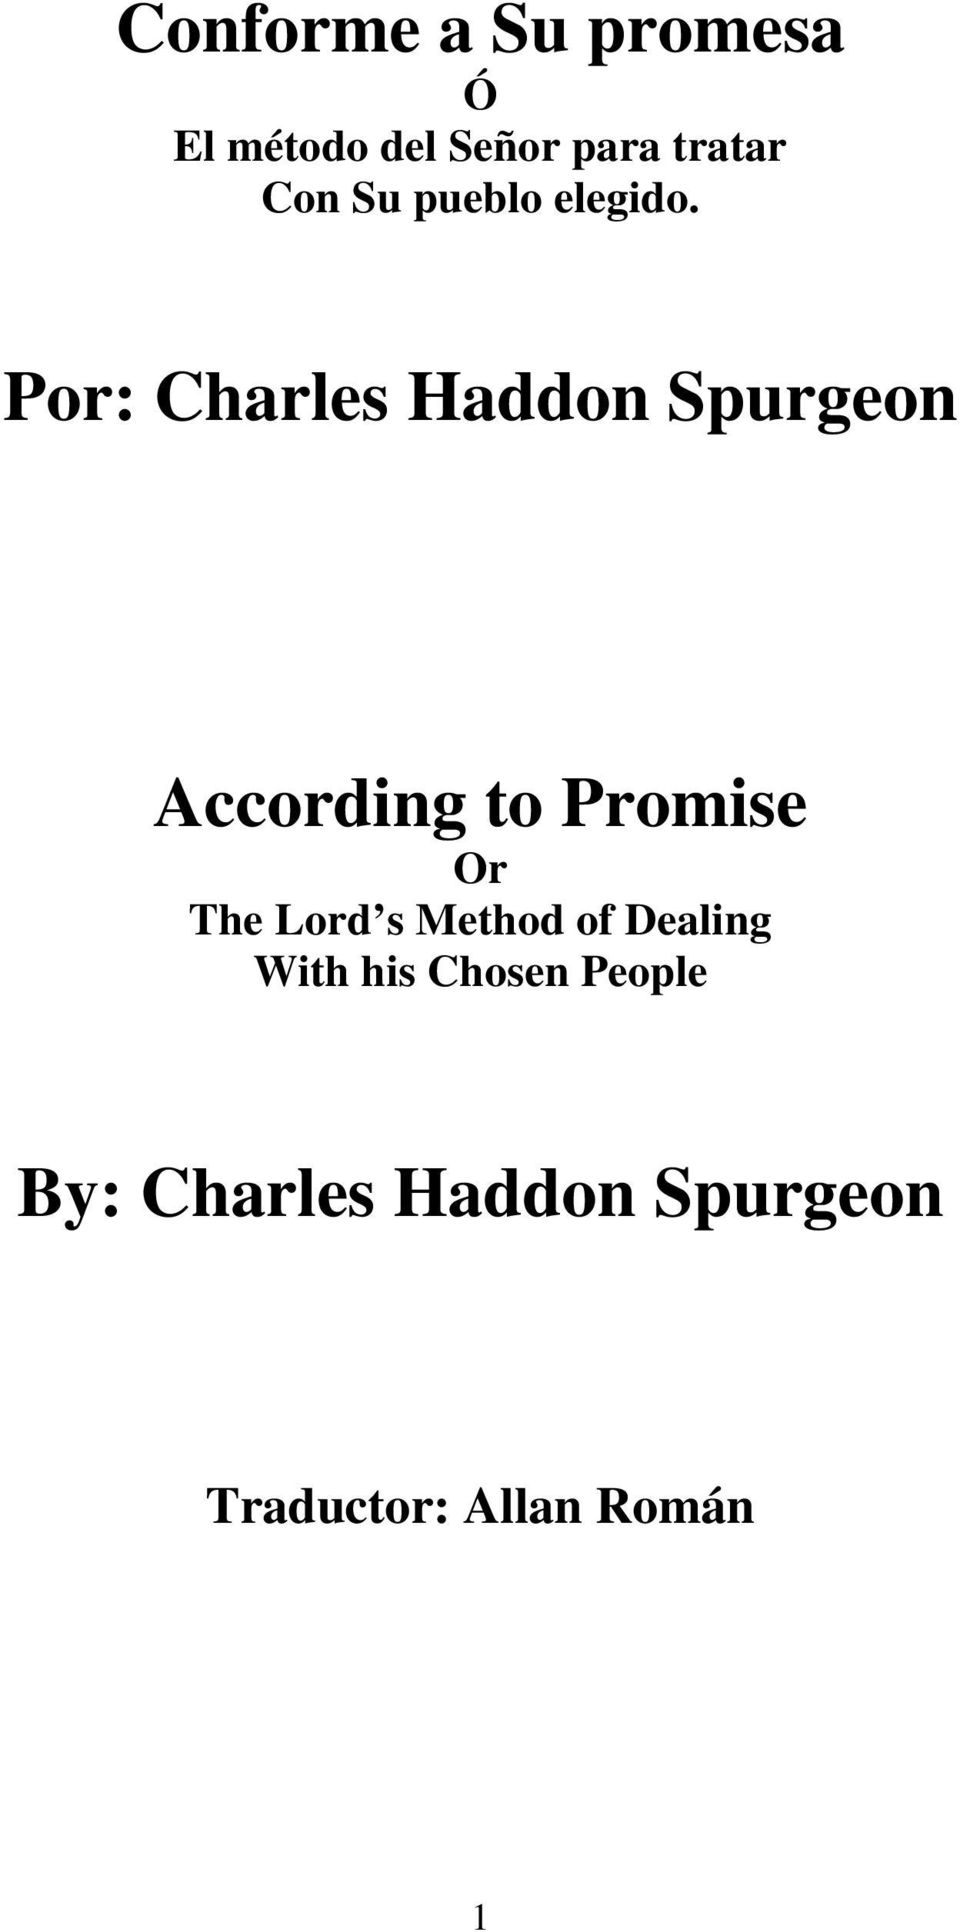 Por: Charles Haddon Spurgeon According to Promise Or The